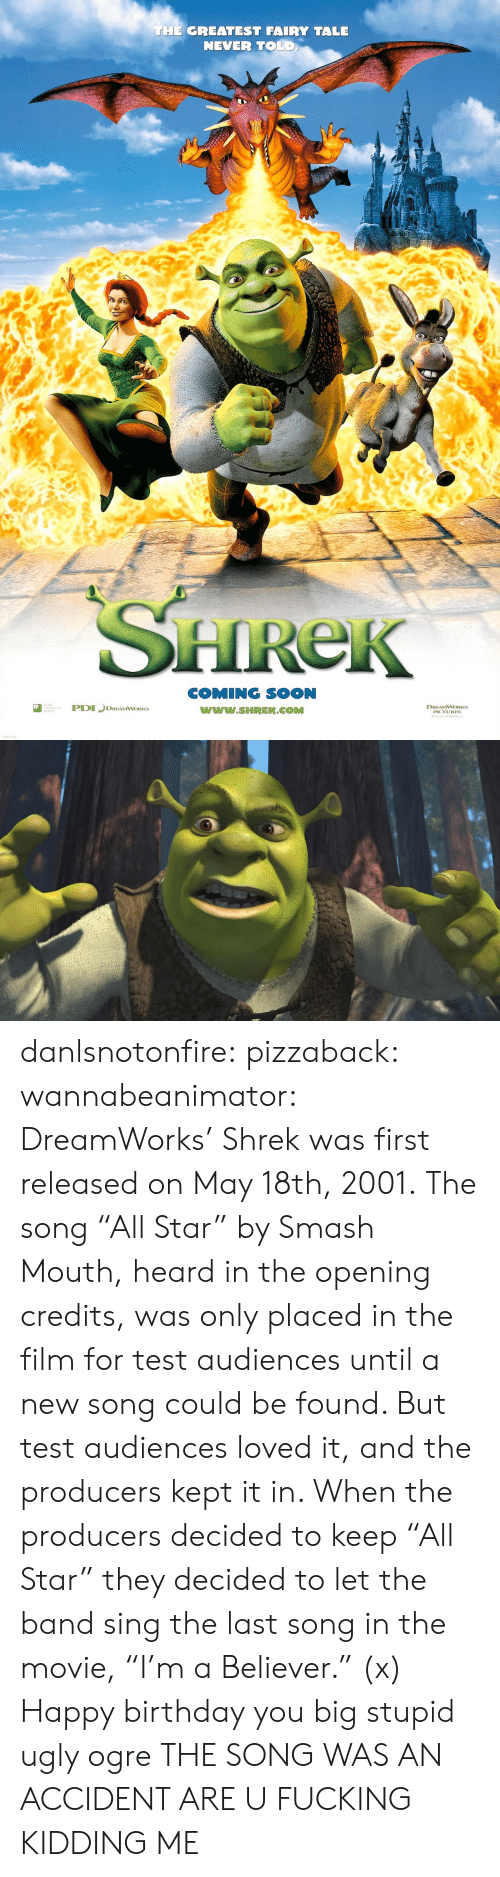 """Birthday, Fucking, and Shrek: THE GREATEST FAIRY TALE  NEVER TOLD  HReK  COMING SOON  www.SHREK.COMM  ted  DREAMWORKS danlsnotonfire:  pizzaback:   wannabeanimator:   DreamWorks' Shrek was first released on May 18th, 2001. The song """"All Star"""" by Smash Mouth, heard in the opening credits, was only placed in the film for test audiences until a new song could be found. But test audiences loved it, and the producers kept it in. When the producers decided to keep """"All Star"""" they decided to let the band sing the last song in the movie, """"I'm a Believer."""" (x)   Happy birthday you big stupid ugly ogre   THE SONG WAS AN ACCIDENT ARE U FUCKING KIDDING ME"""